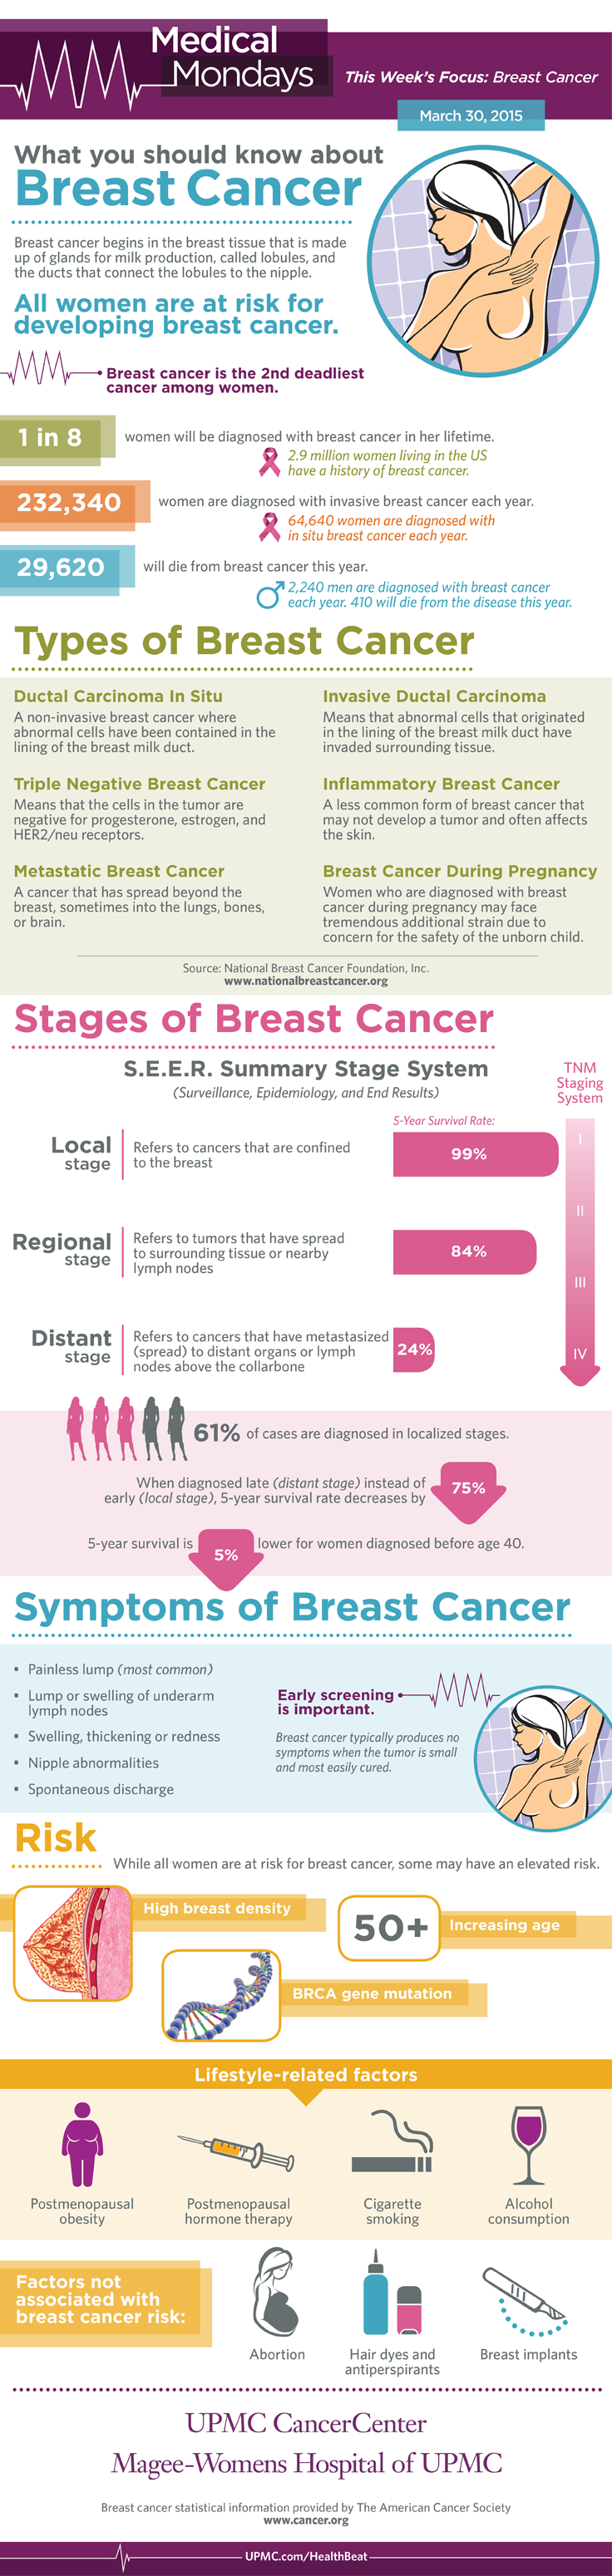 Infographic showing statistics, risk factors, and symptoms of breast cancer.